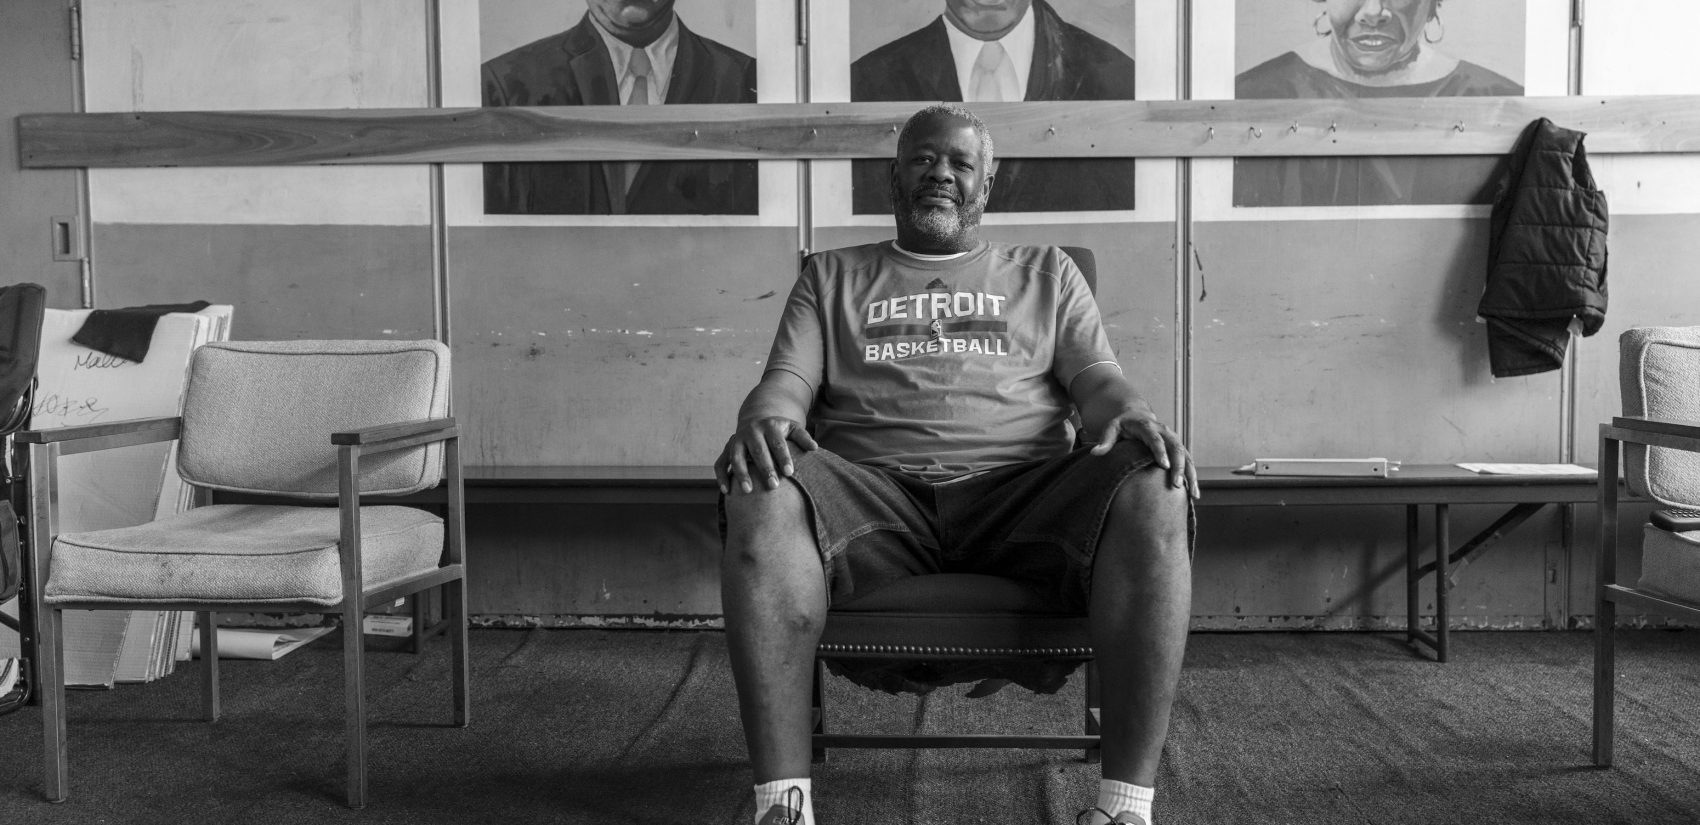 "Jimmy Richardson, who often wears t-shirts of the teams the Morris twins have played on, has worked at Gathers since 1991. ""I know a lot of the kids are going through some issues. I just talk to them and let them know it can get better...trouble is easy to get into and hard to get out of."" (Jessica Kourkounis for Keystone Crossroads)"